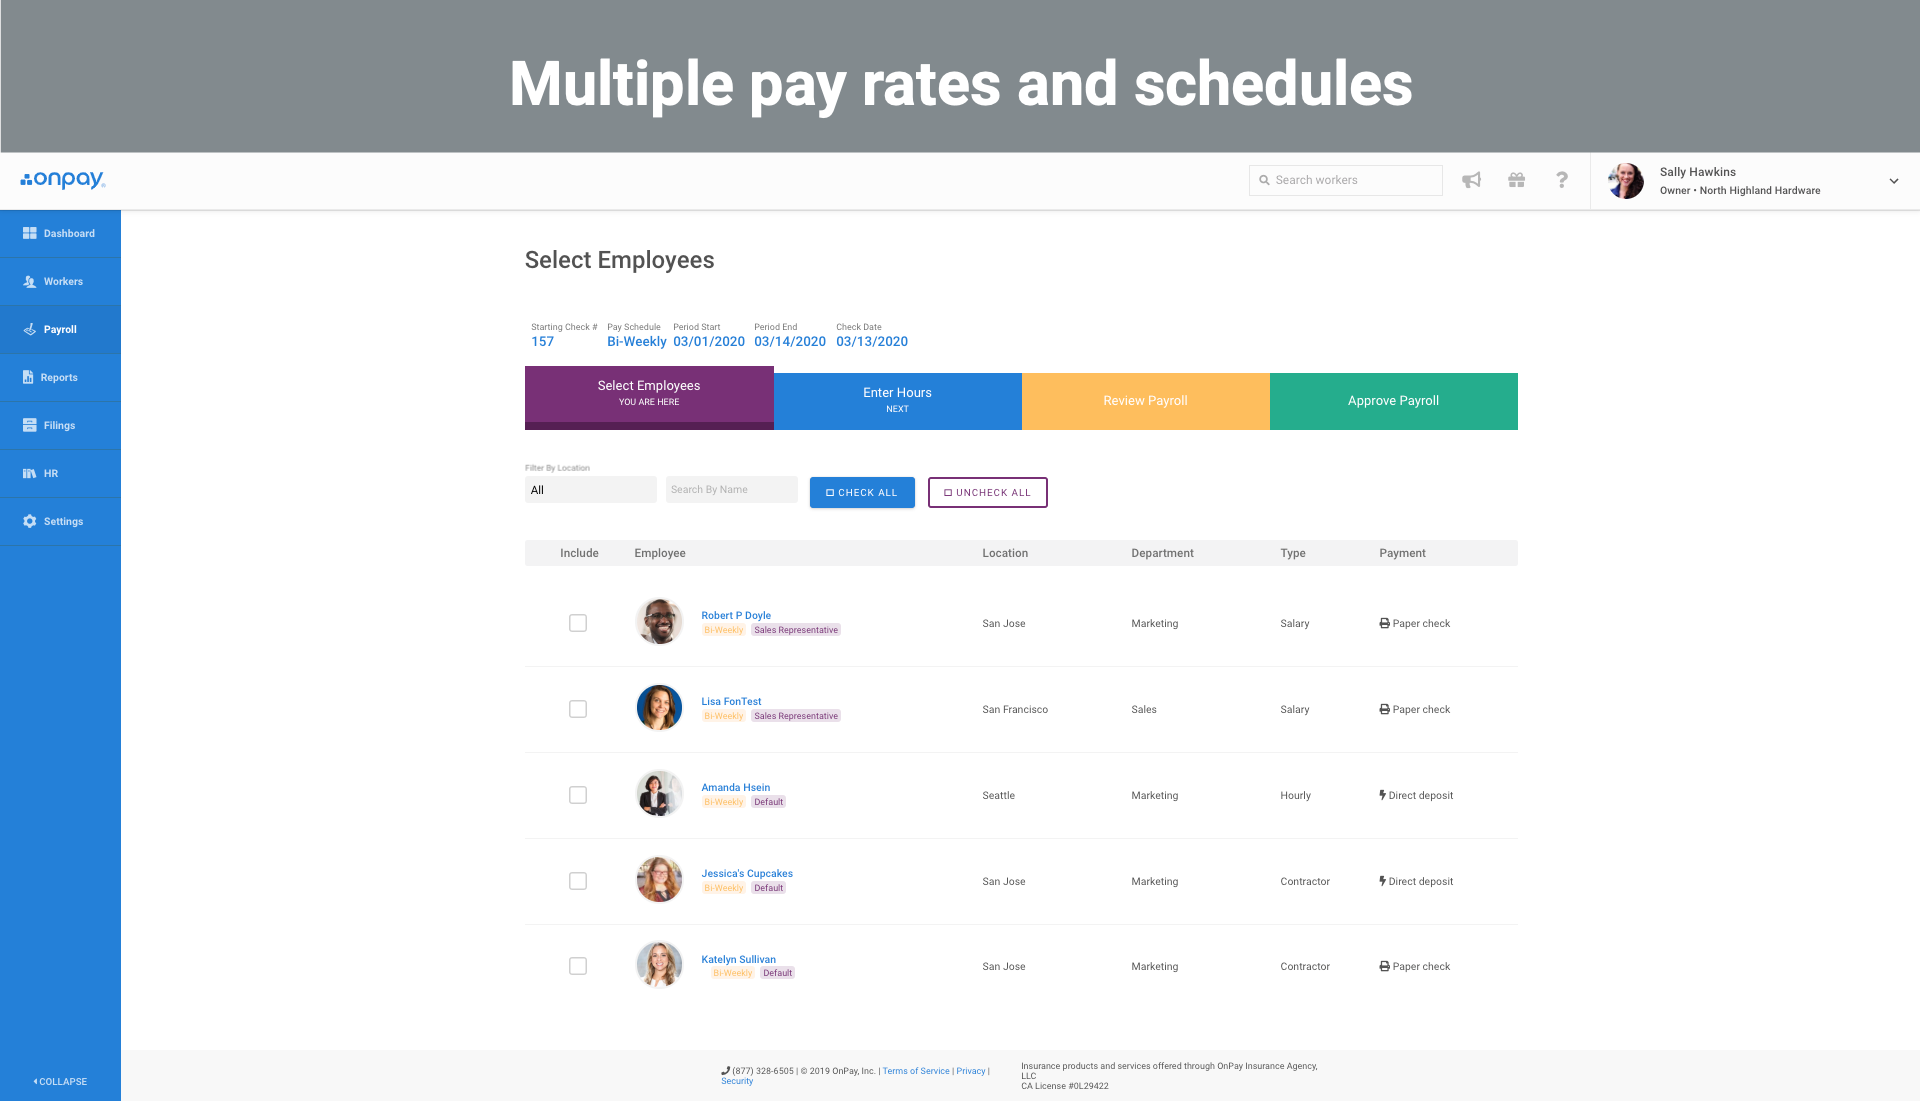 5 Multiple pay rates and schedules